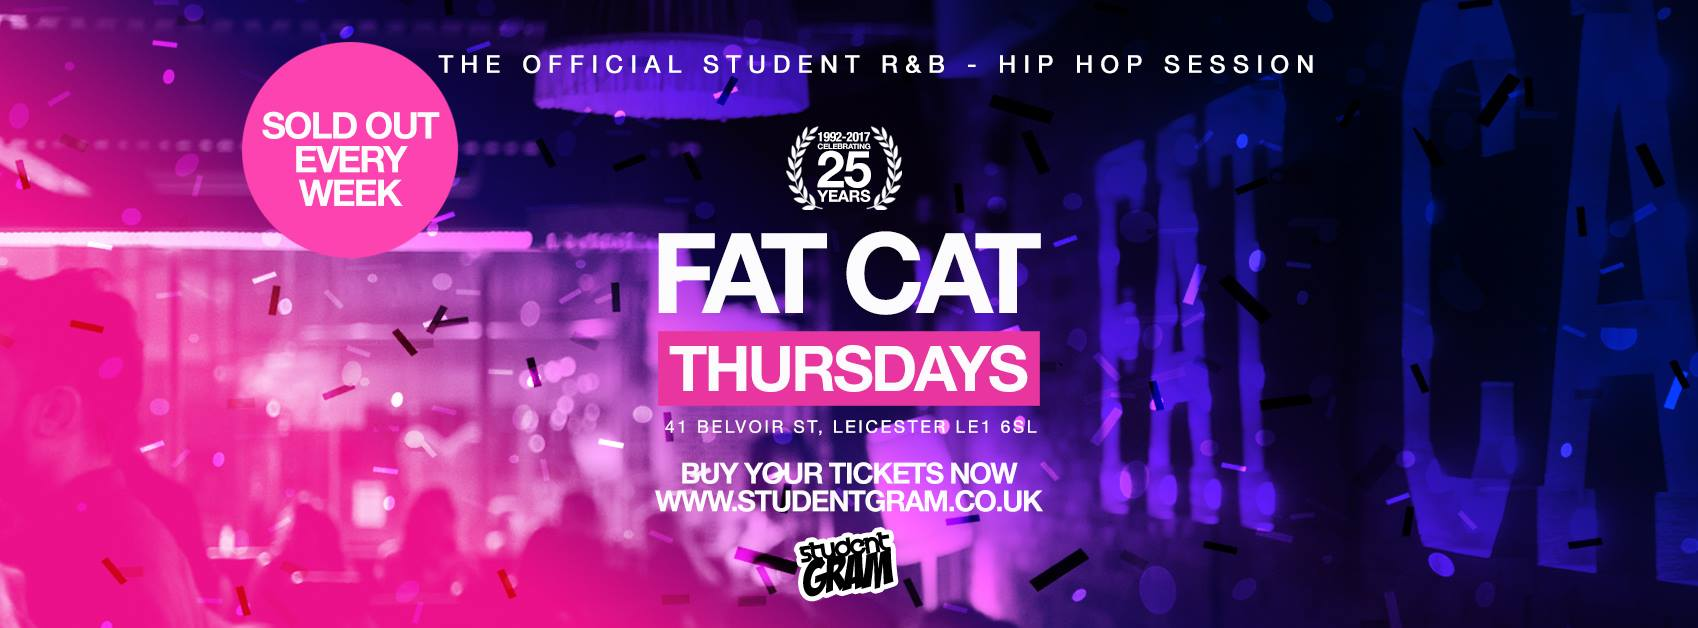 Studentgram leicester tickets and events fatsoma malvernweather Image collections